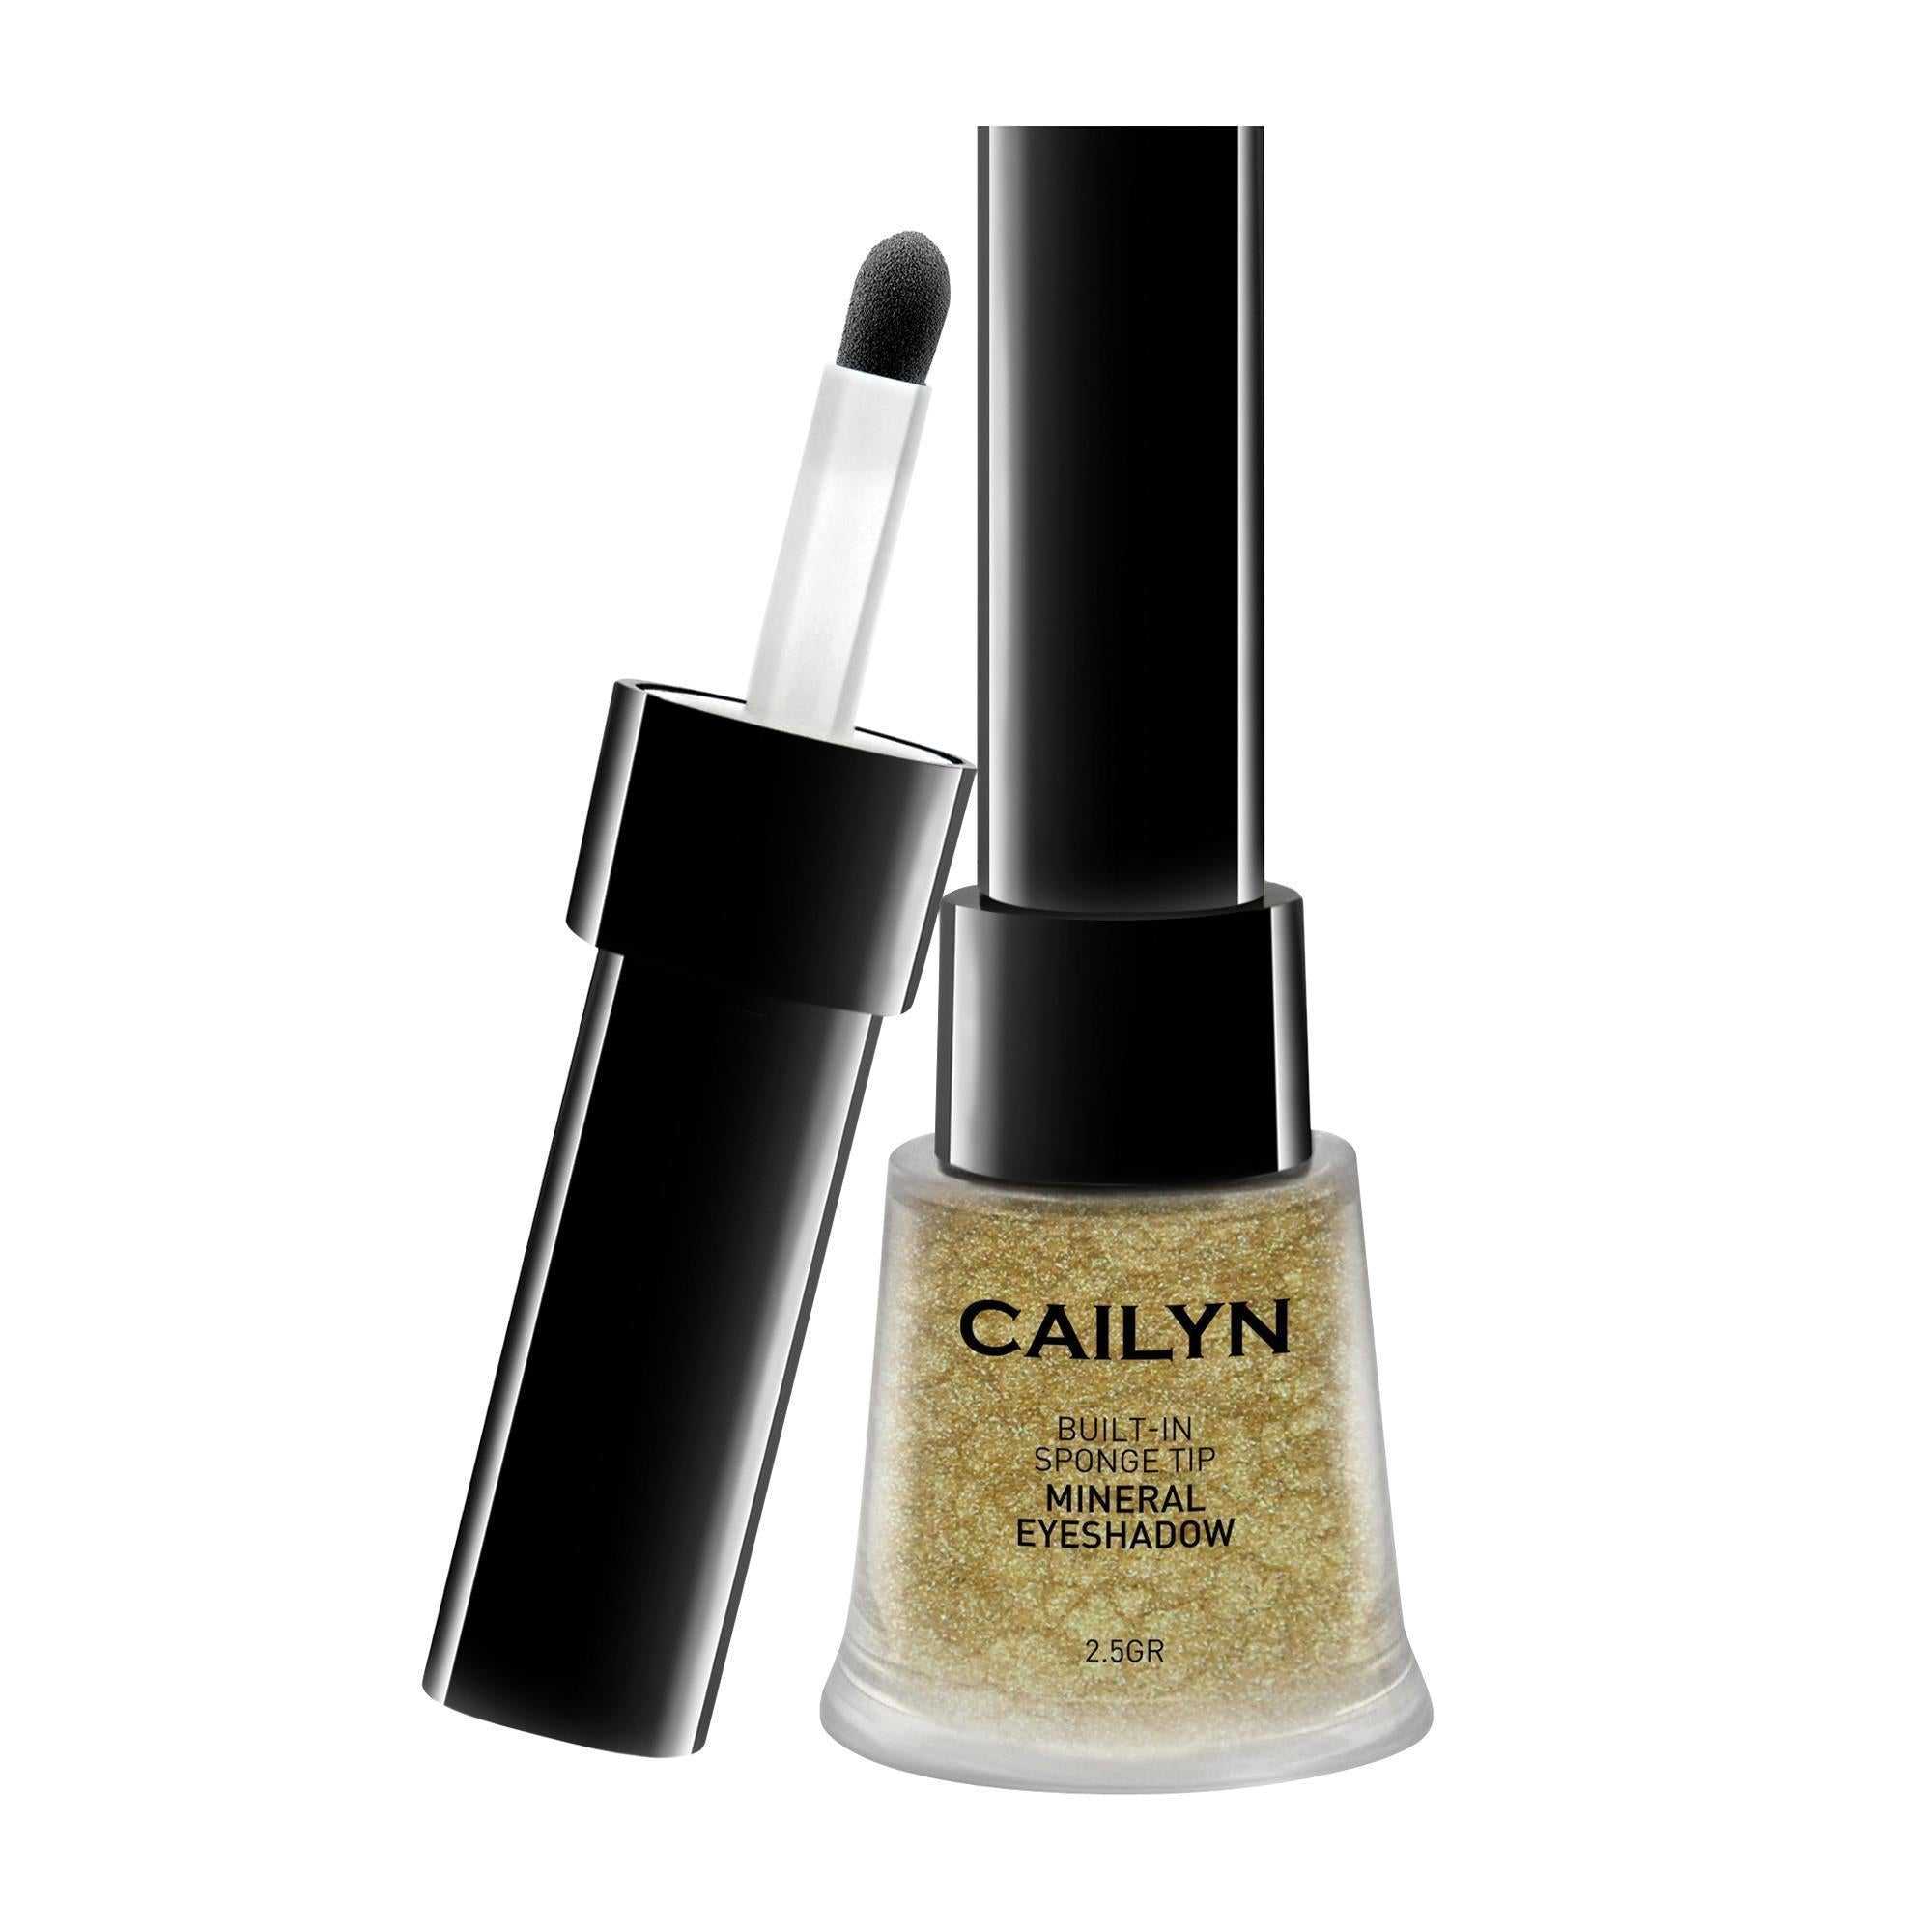 Makeup, Skin & Personal Care Khaki Cailyn Mineral Eye Polish / Built-In Sponge Tip